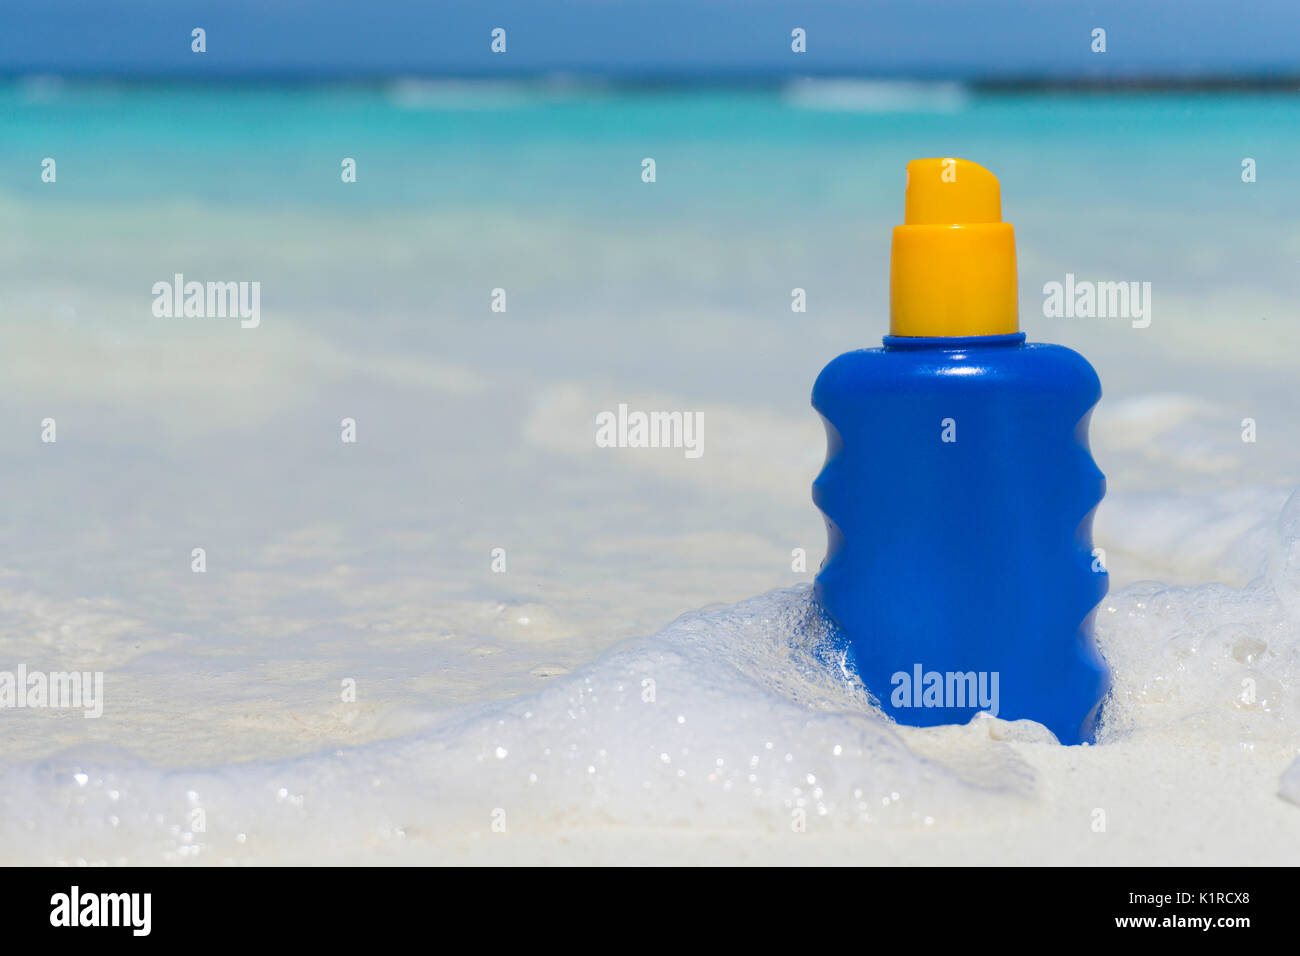 Bottle of sun lotion suncream protection on a tropical beach - Stock Image